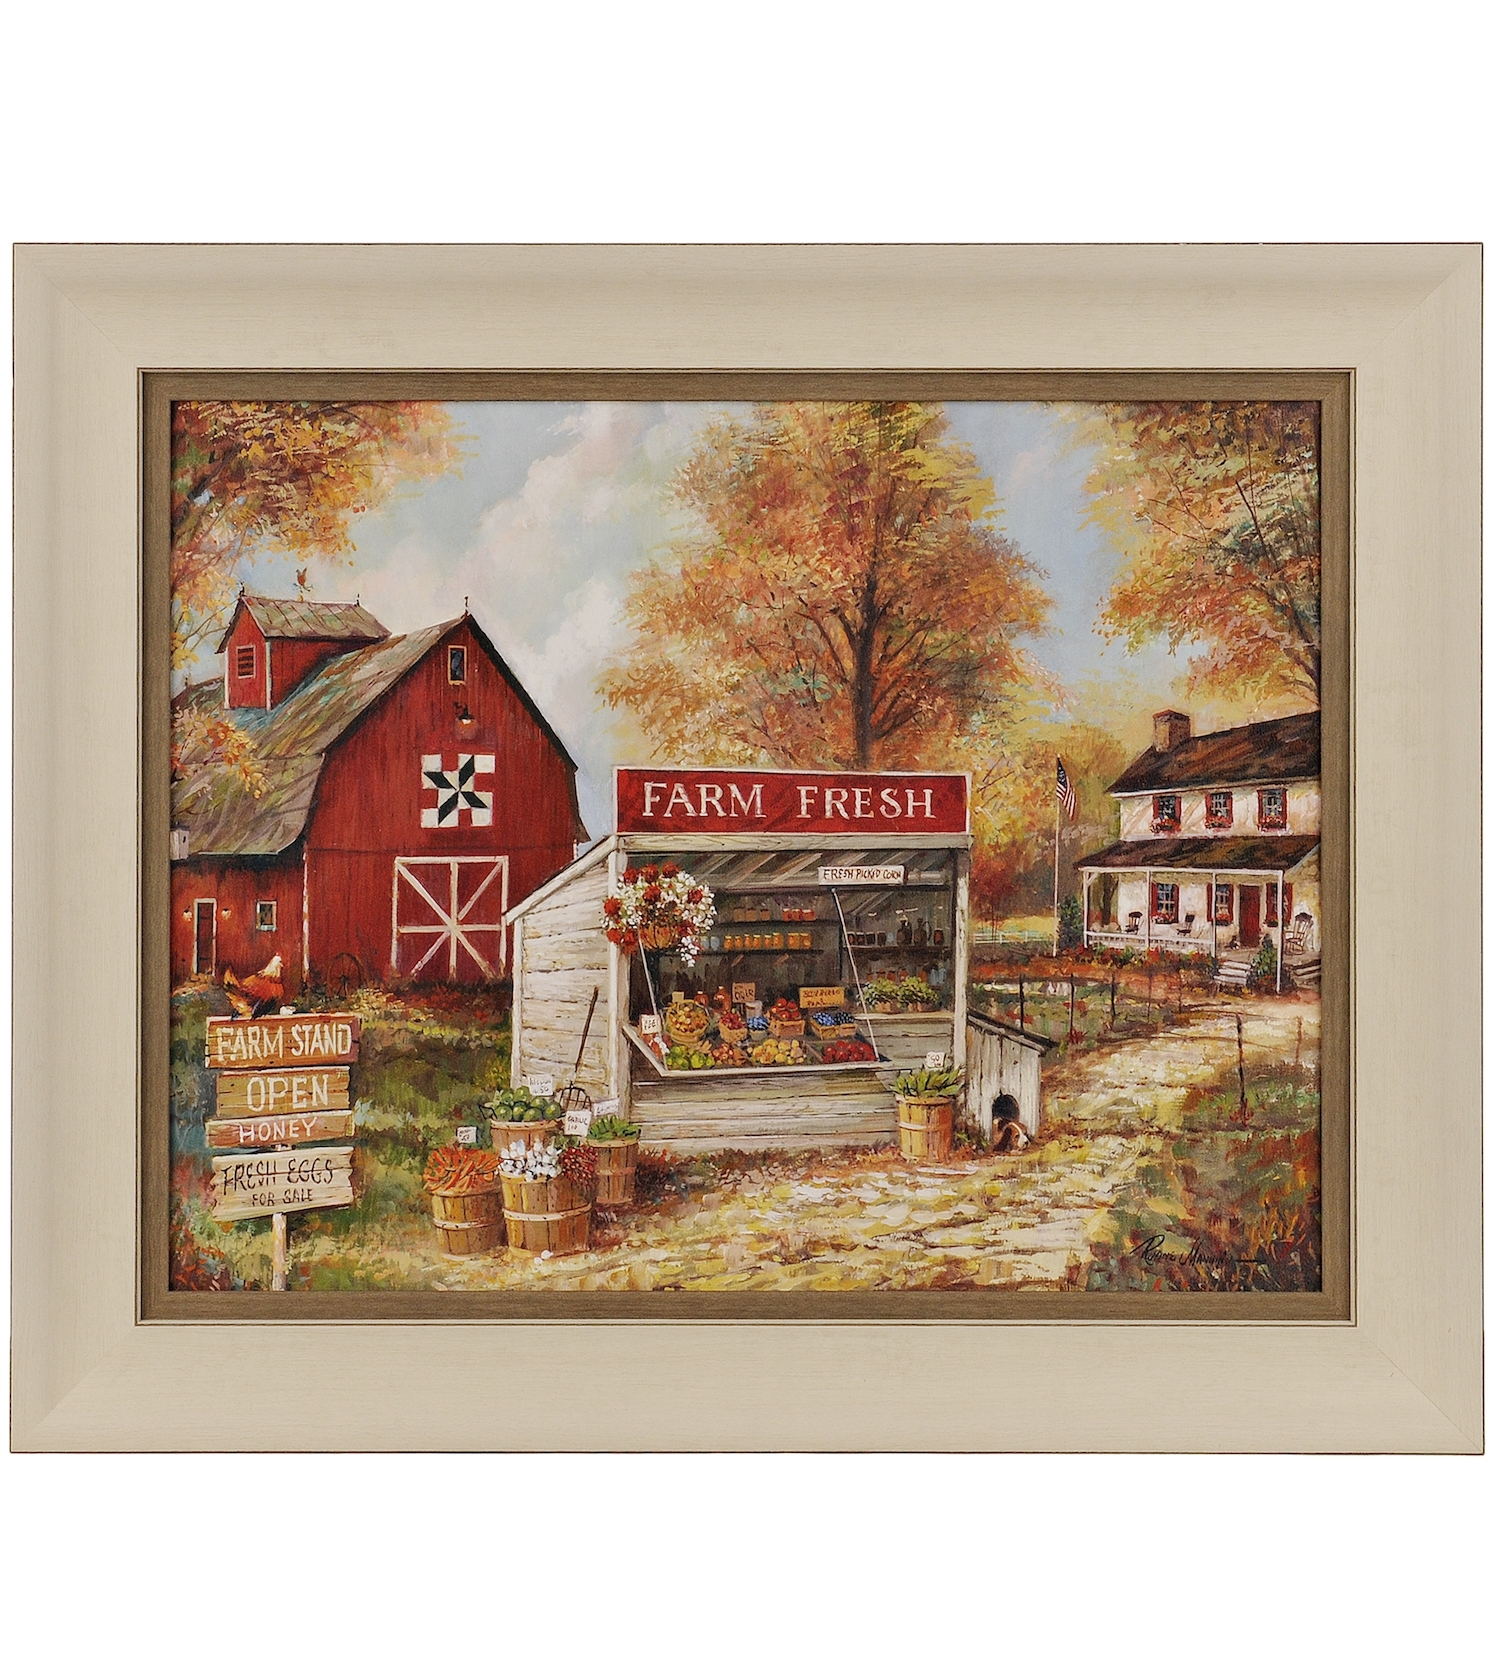 Farm Stand Framed Art Print | Farm Stand, Farming And Barn Pertaining To 2018 Affordable Framed Art Prints (View 5 of 15)